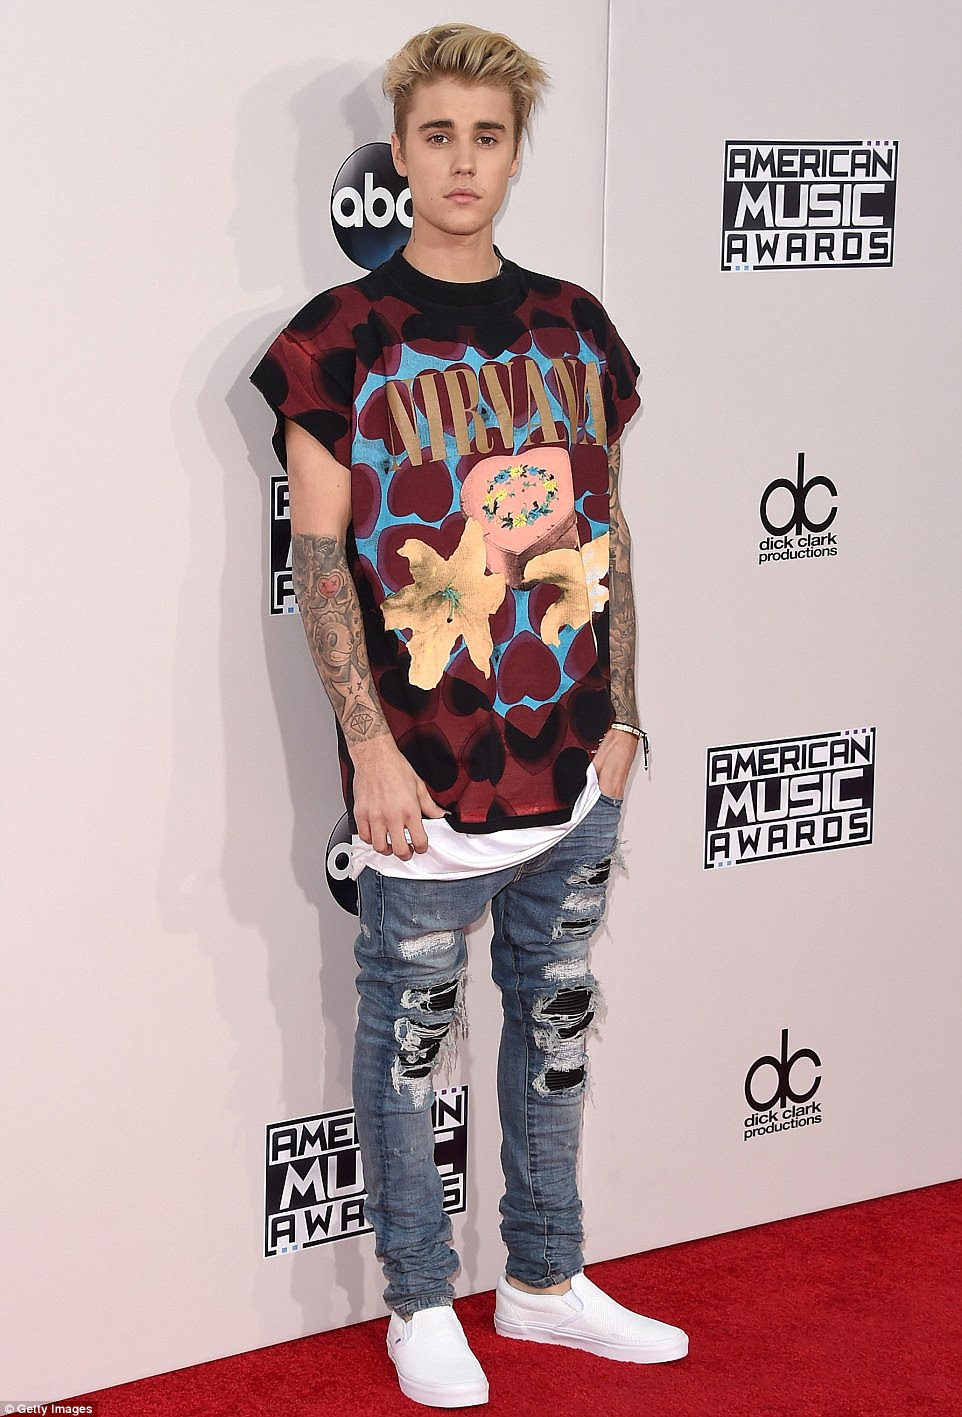 Grunge: Justin Bieber wore a Nirvana t-shirt and ripped jeans for his red carpet appearance